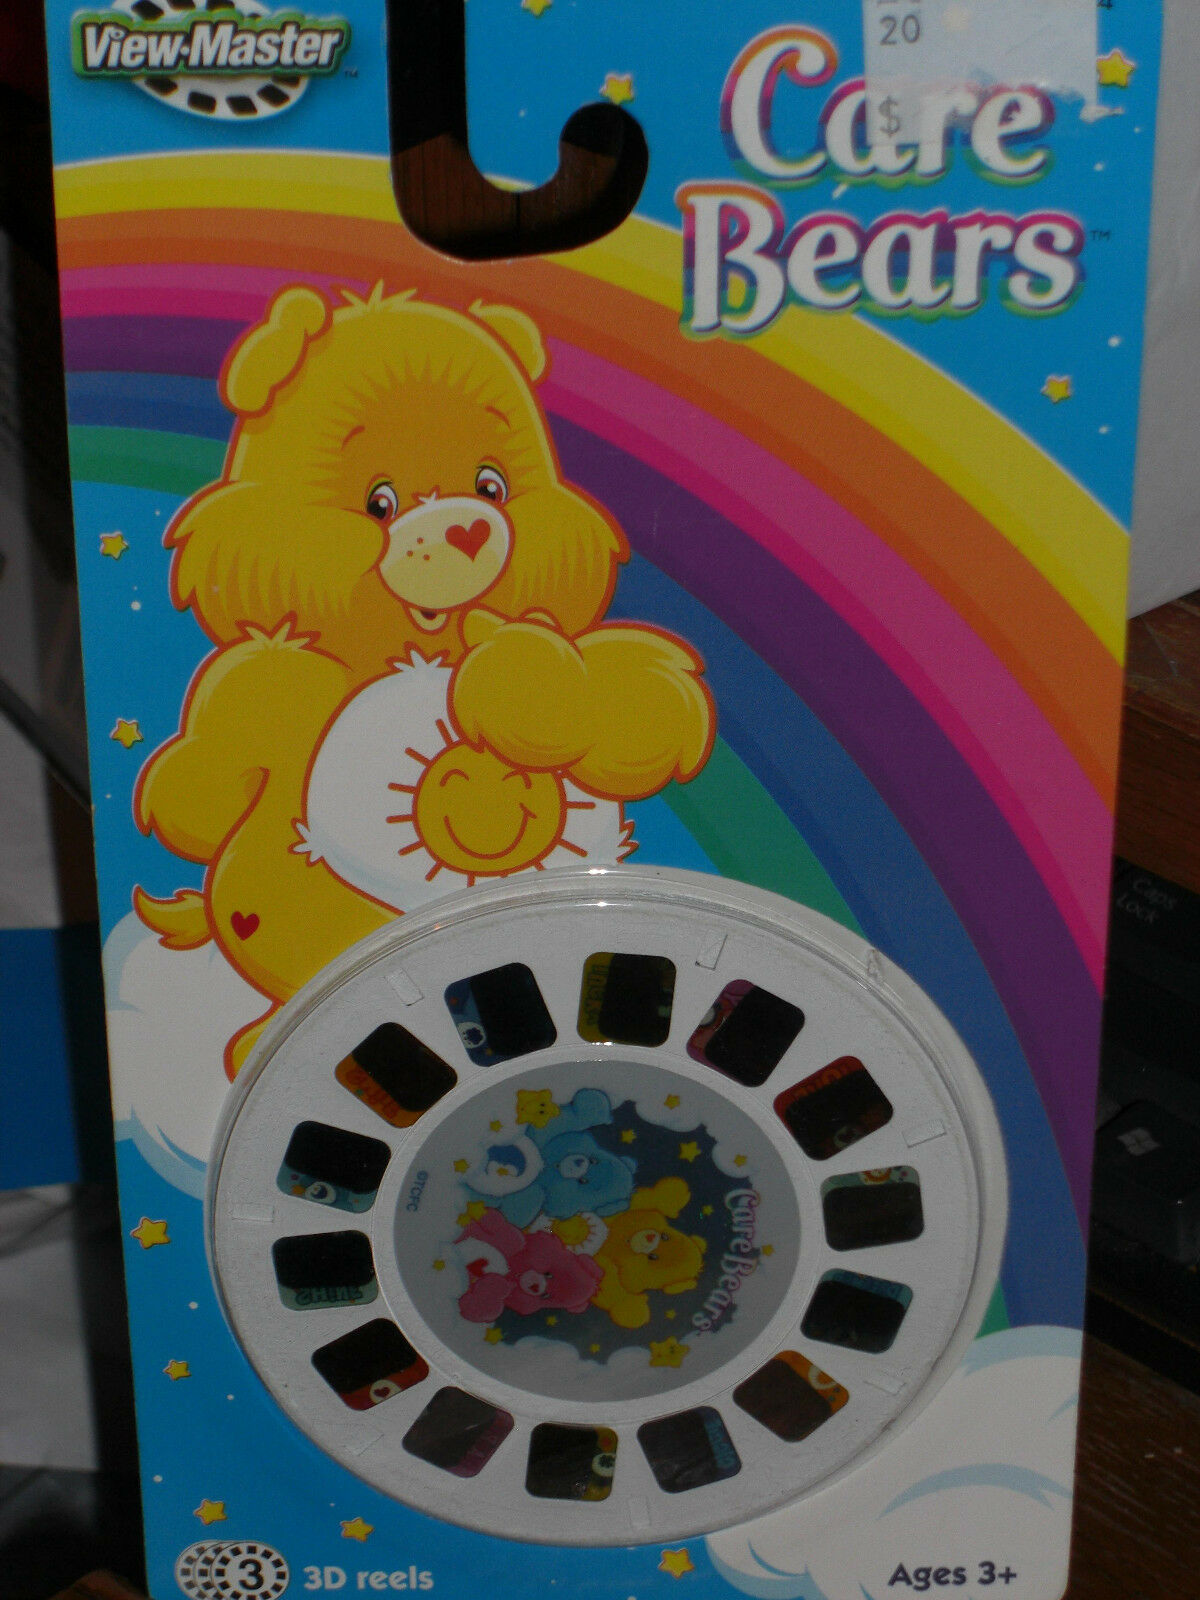 2005 VIEW MASTER CARE BEARS 3D REELS  H4824